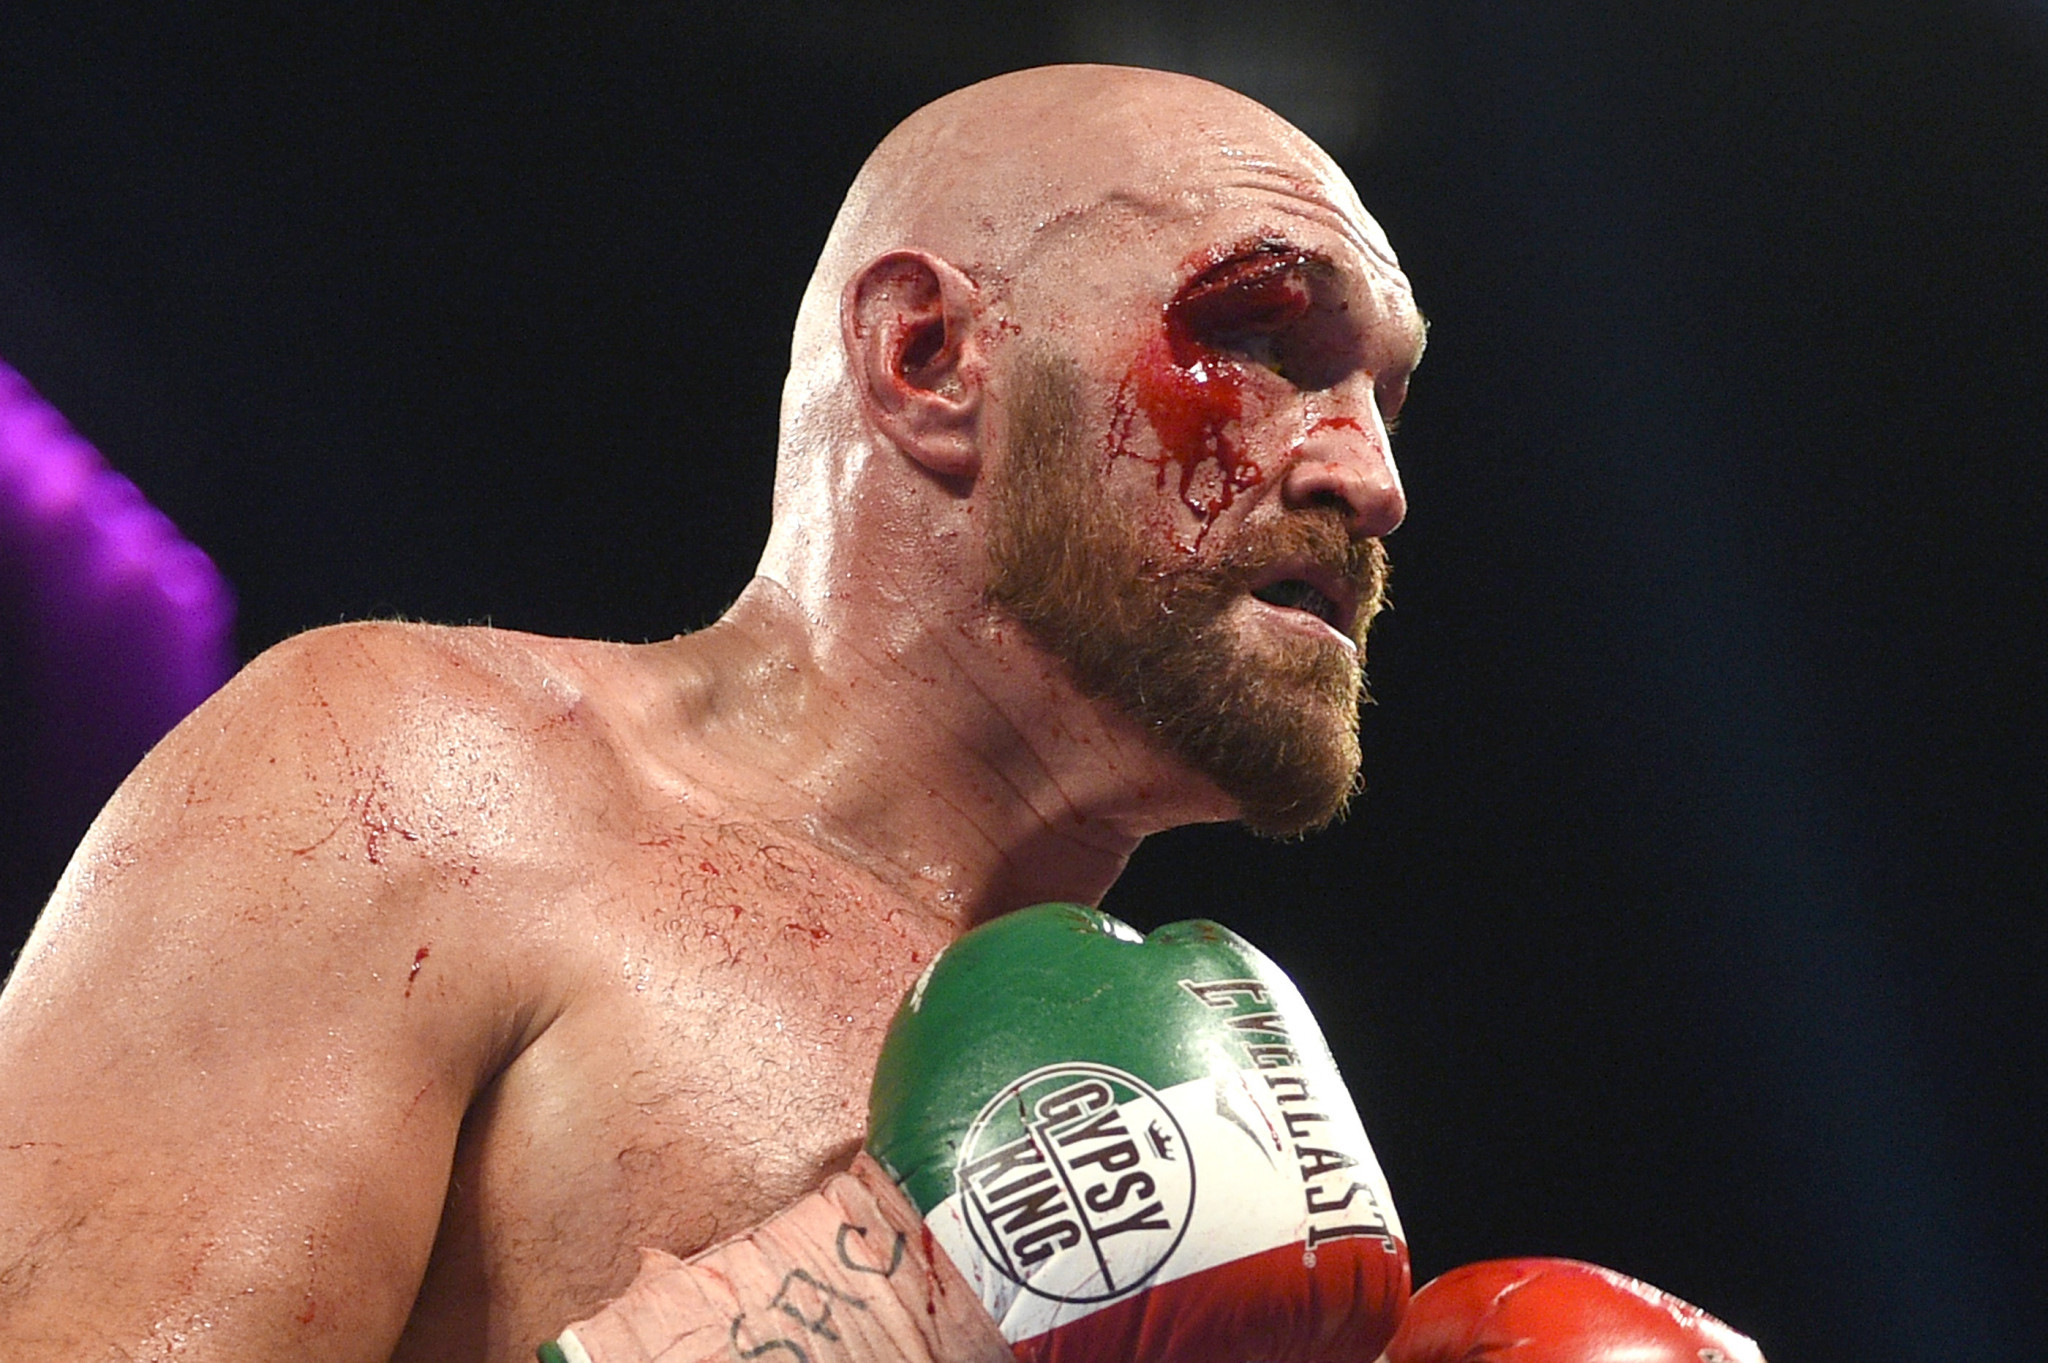 Tyson Fury suffered a deep cut during his fight with Sweden's Otto Wallin last weekend ©Getty Images